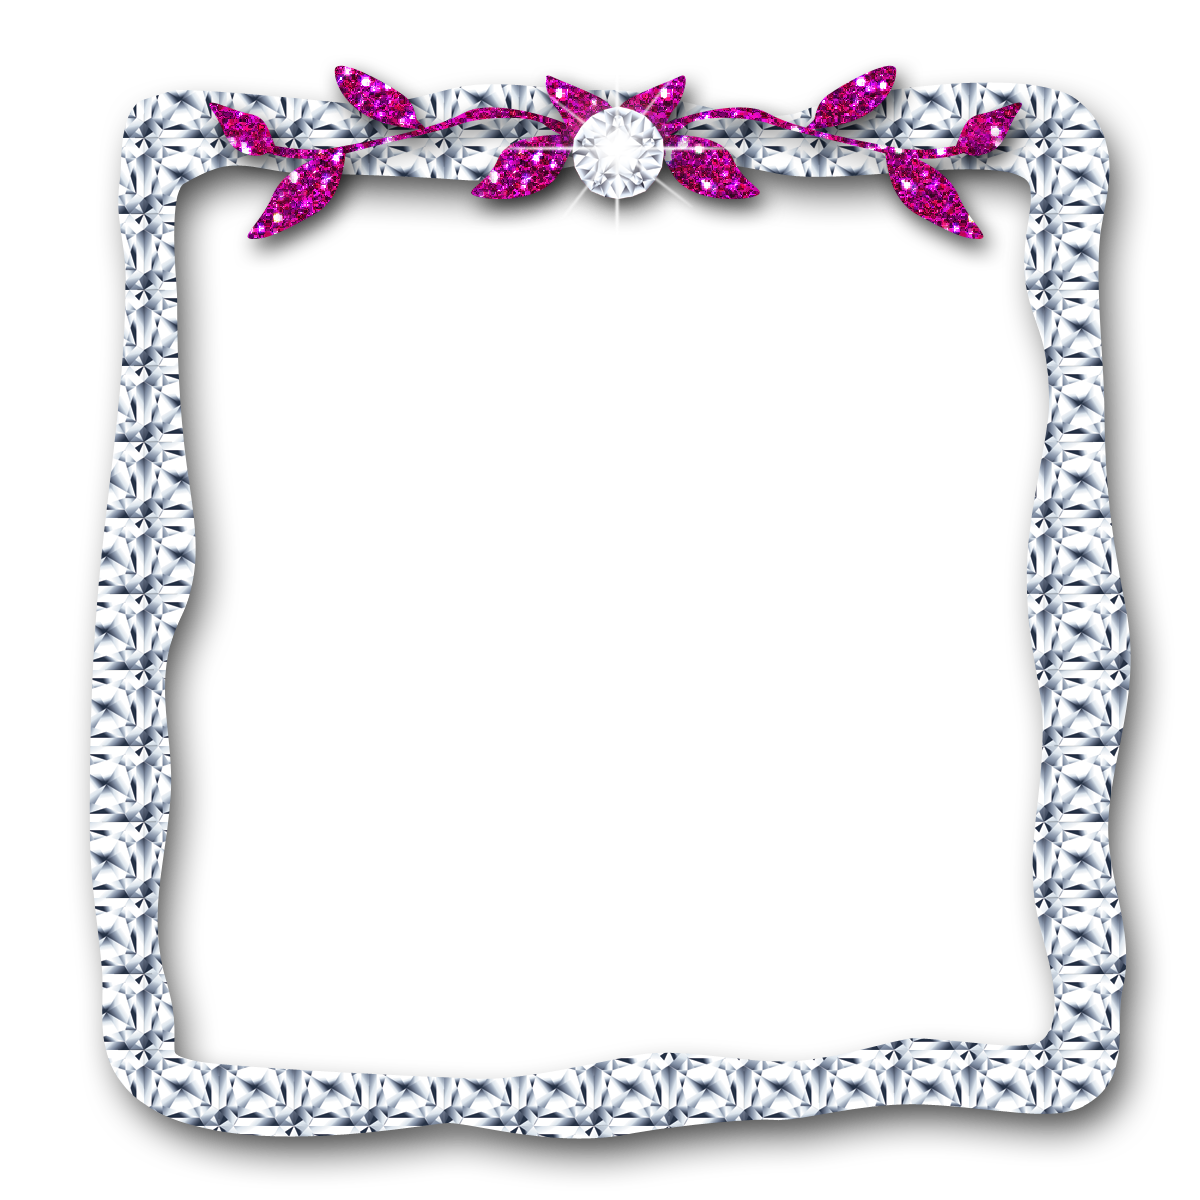 Borders and frames picture. Diamonds clipart frame